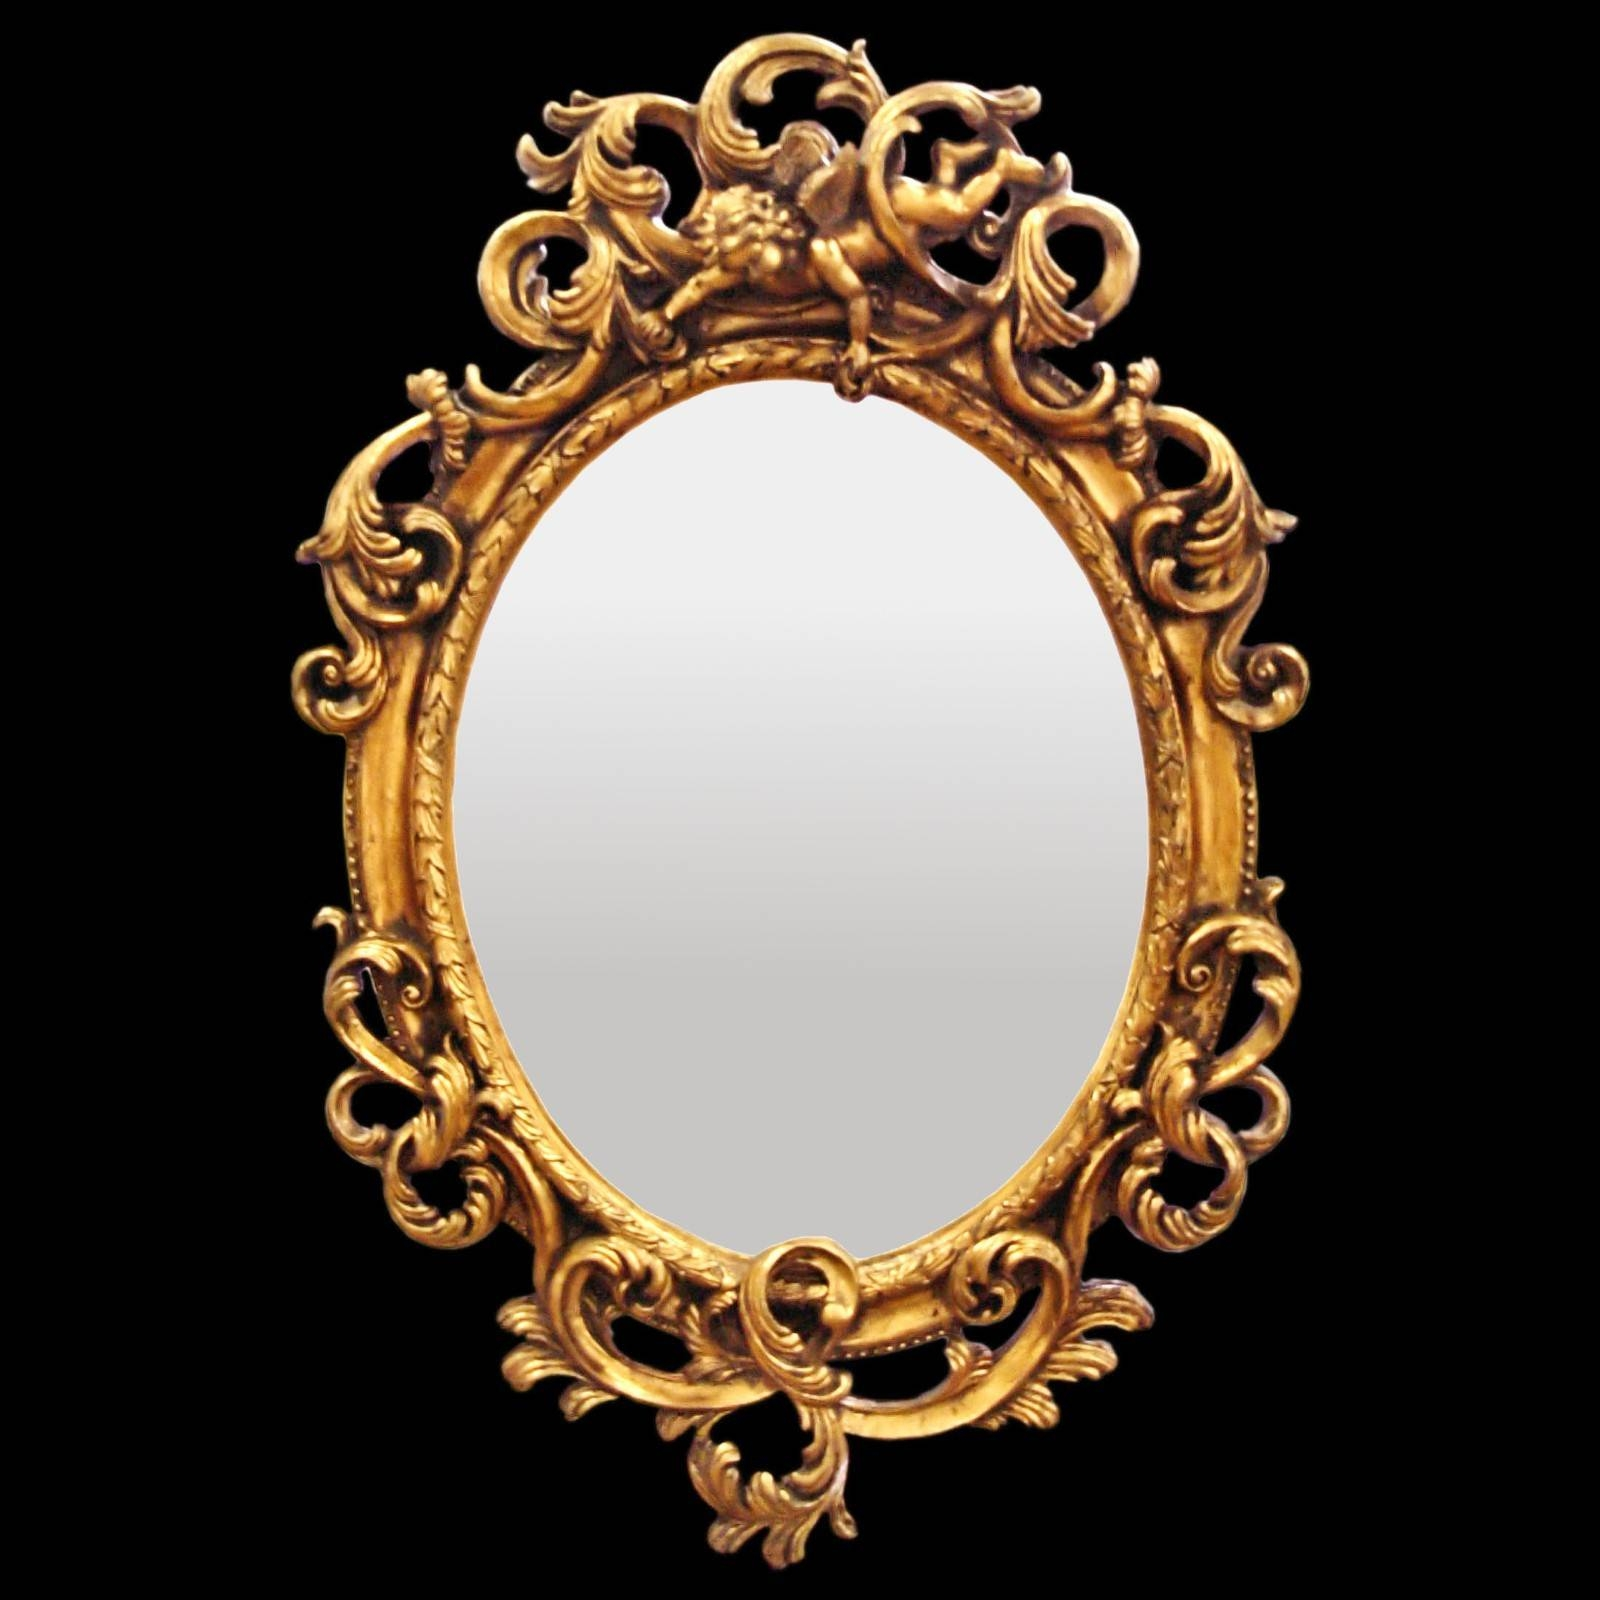 Bathroom Mirror Oval Wall Mirror Baroque De Luxe Gold Acanthus intended for Baroque Wall Mirrors (Image 5 of 15)